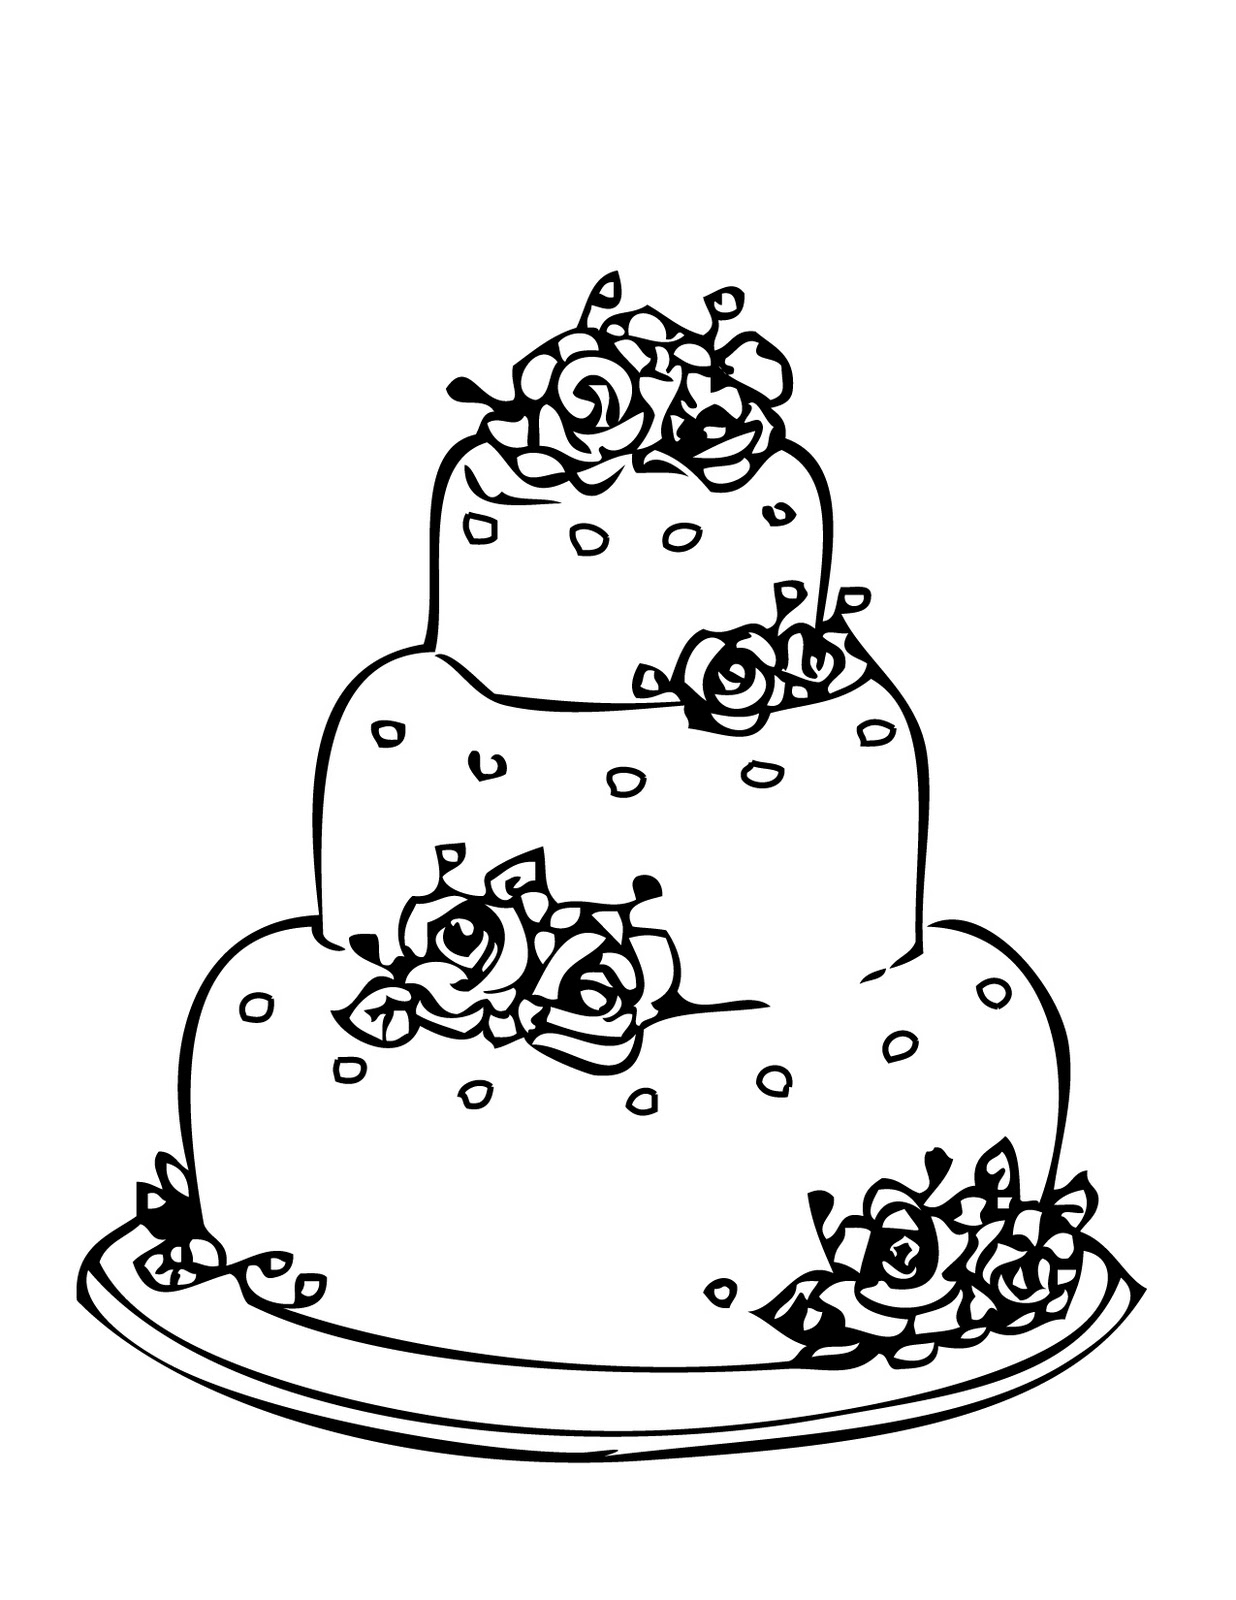 Pictures Of Cake To Colour In : Ausmalbilder fur Kinder - Malvorlagen und malbuch   Cake ...